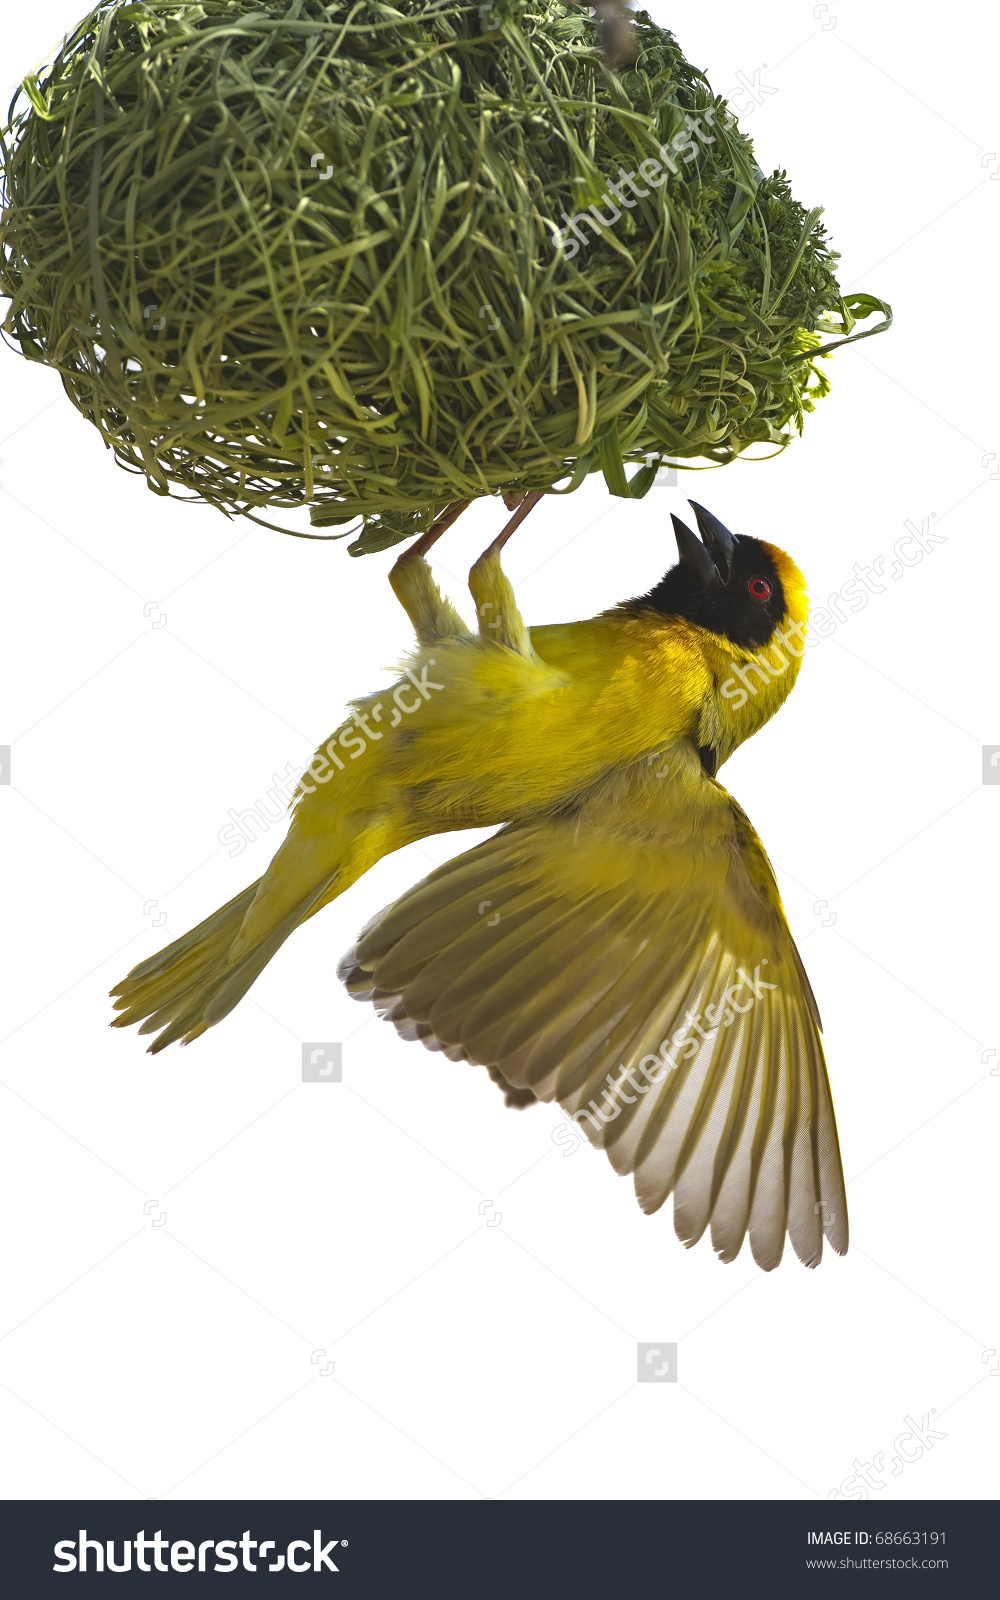 Masked Weaver Hanging Nest Against White Stock Photo 68663191.